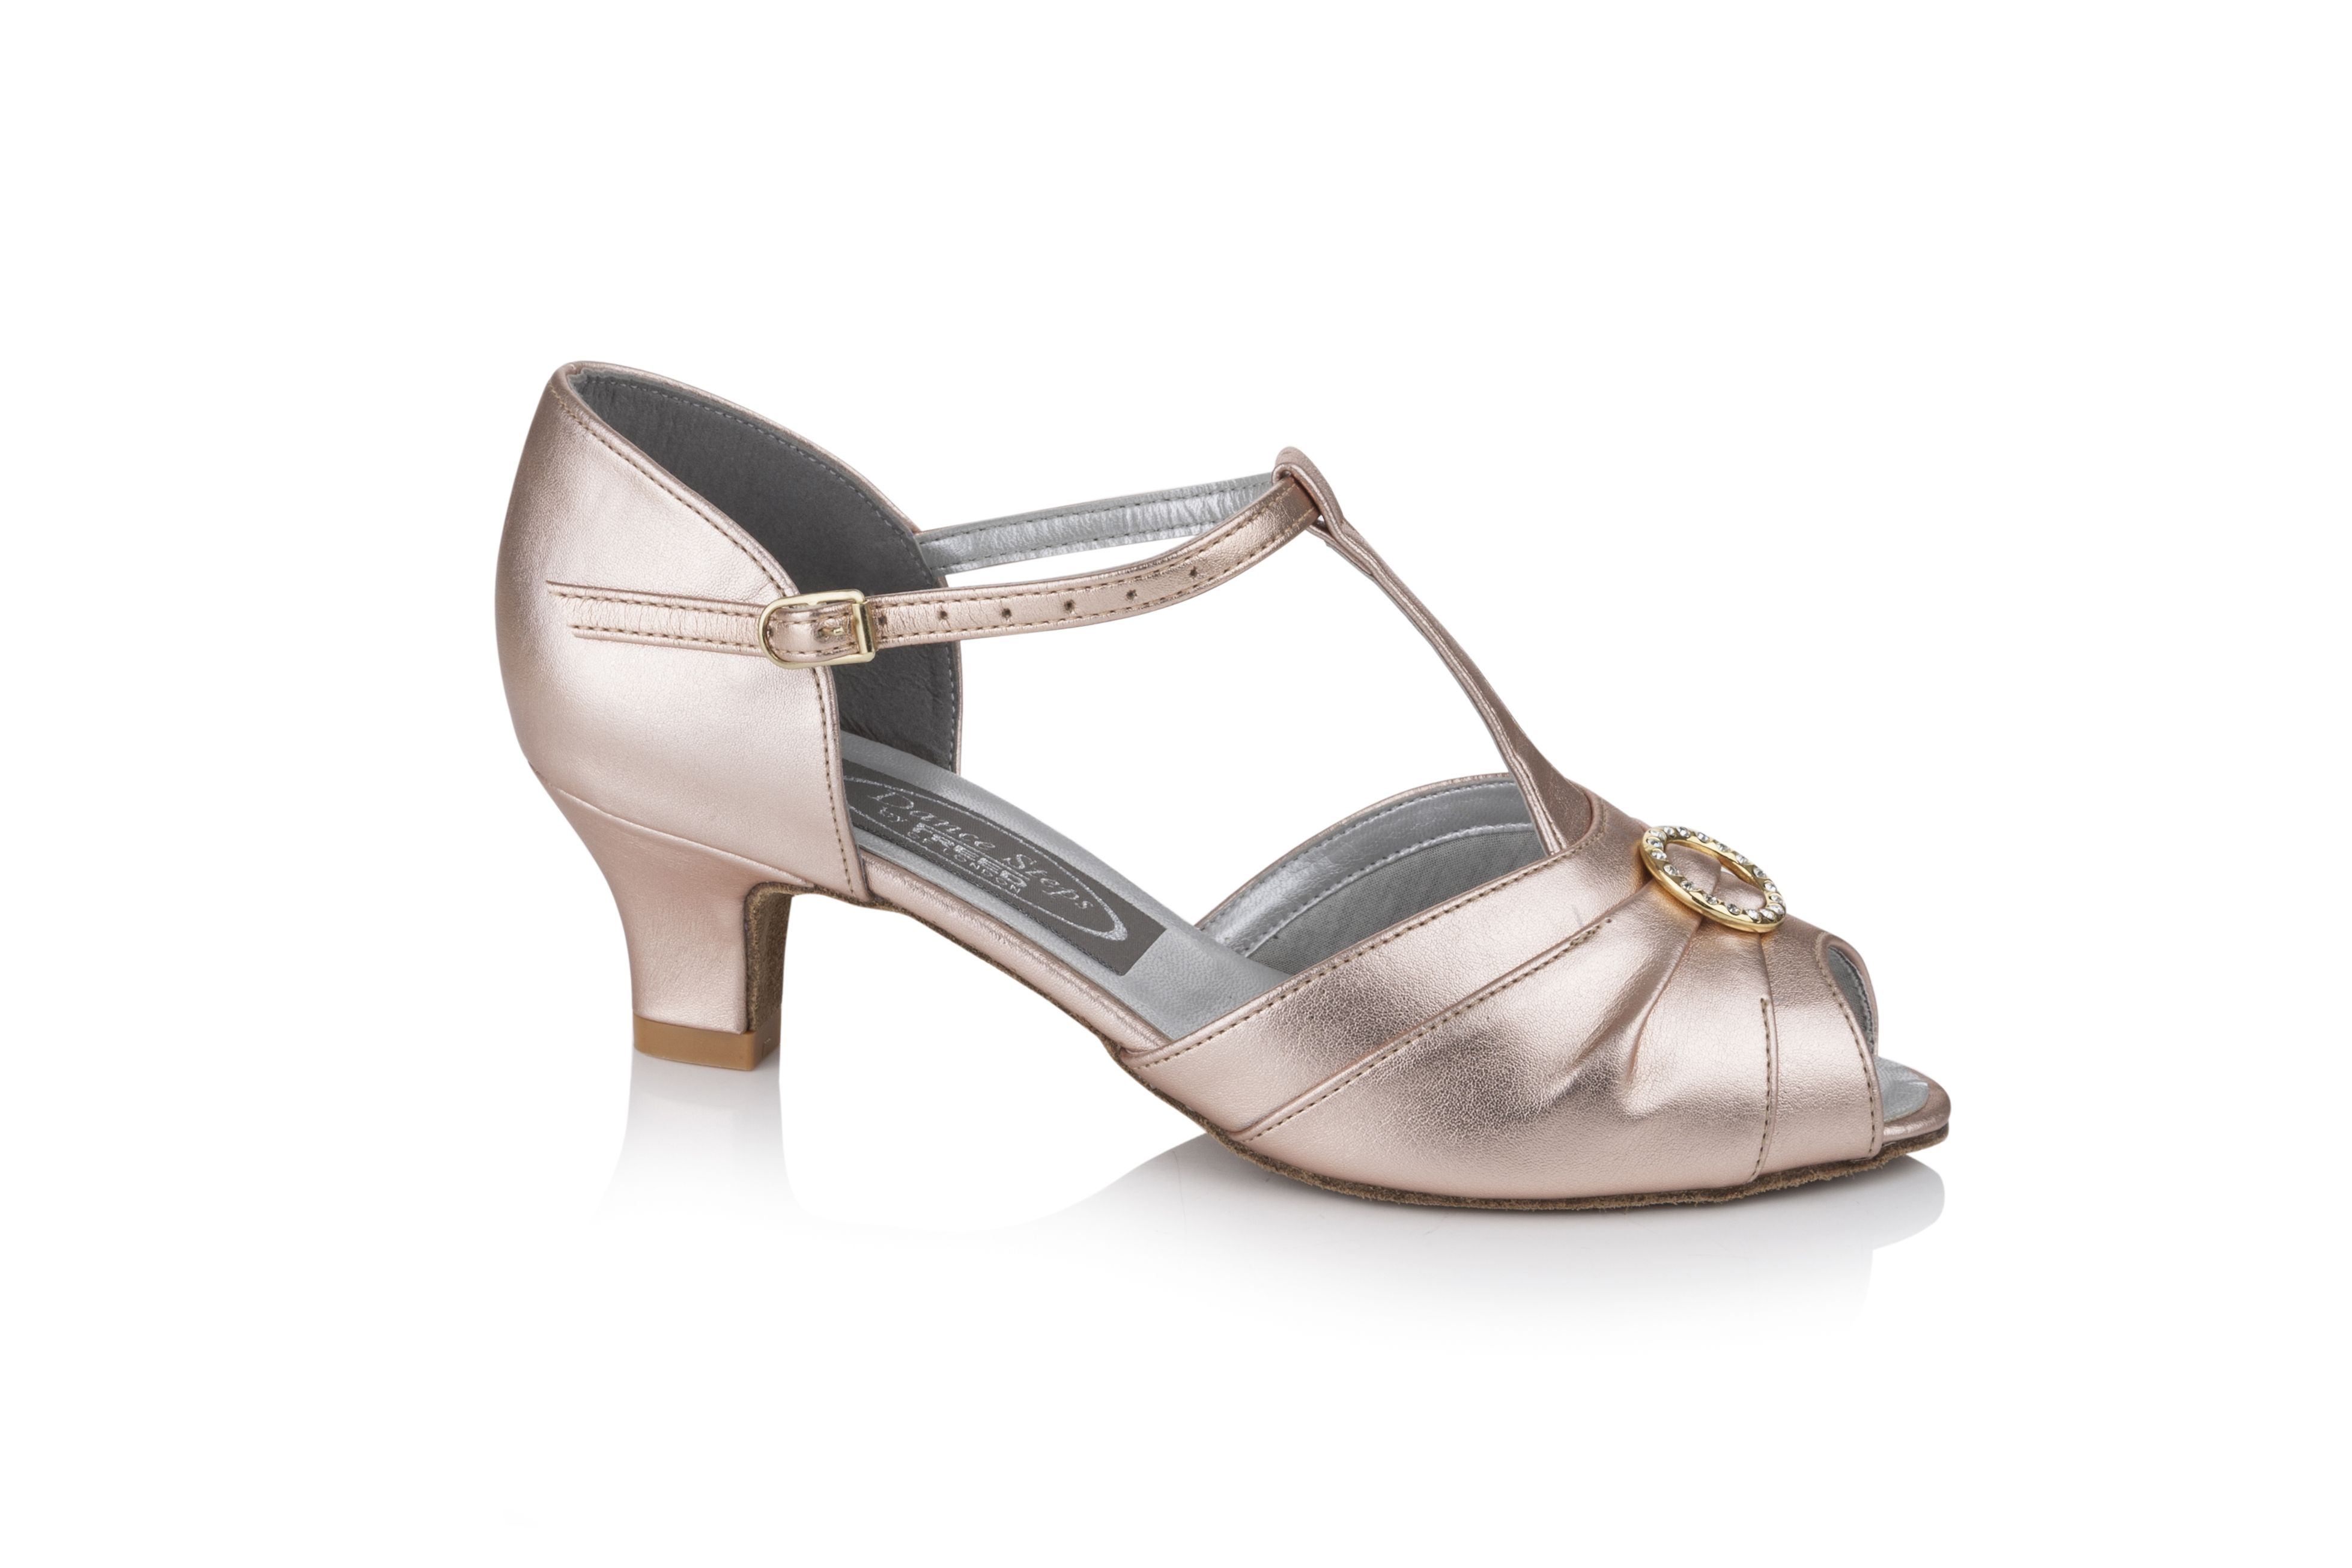 Saturn E Width In Black Peach Gold Or Silver Dance Steps Shoe By Freed Of London Call 866 693 7333 X15 Wholesale X T Bar Shoes Dance Steps Dance Shoes